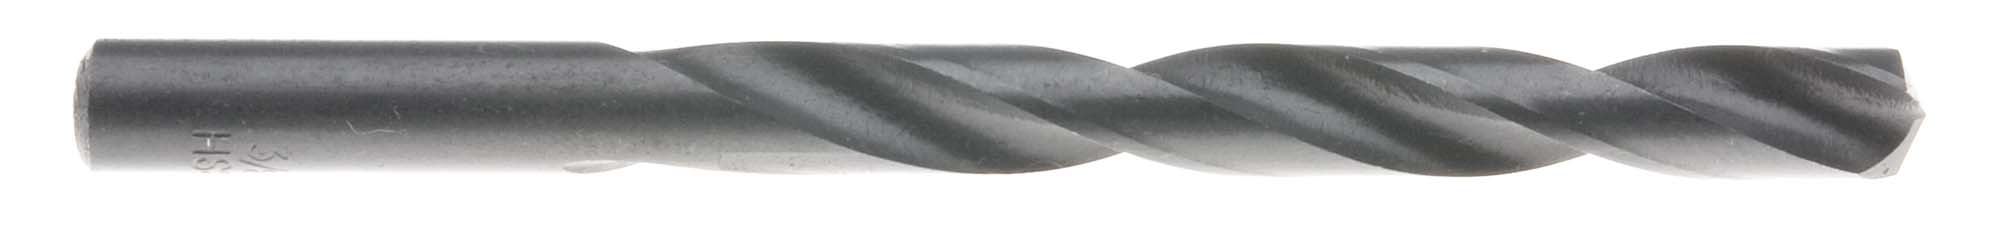 "U (.368"") Heavy Duty Split Point Jobber Drill Bit, High Speed Steel"